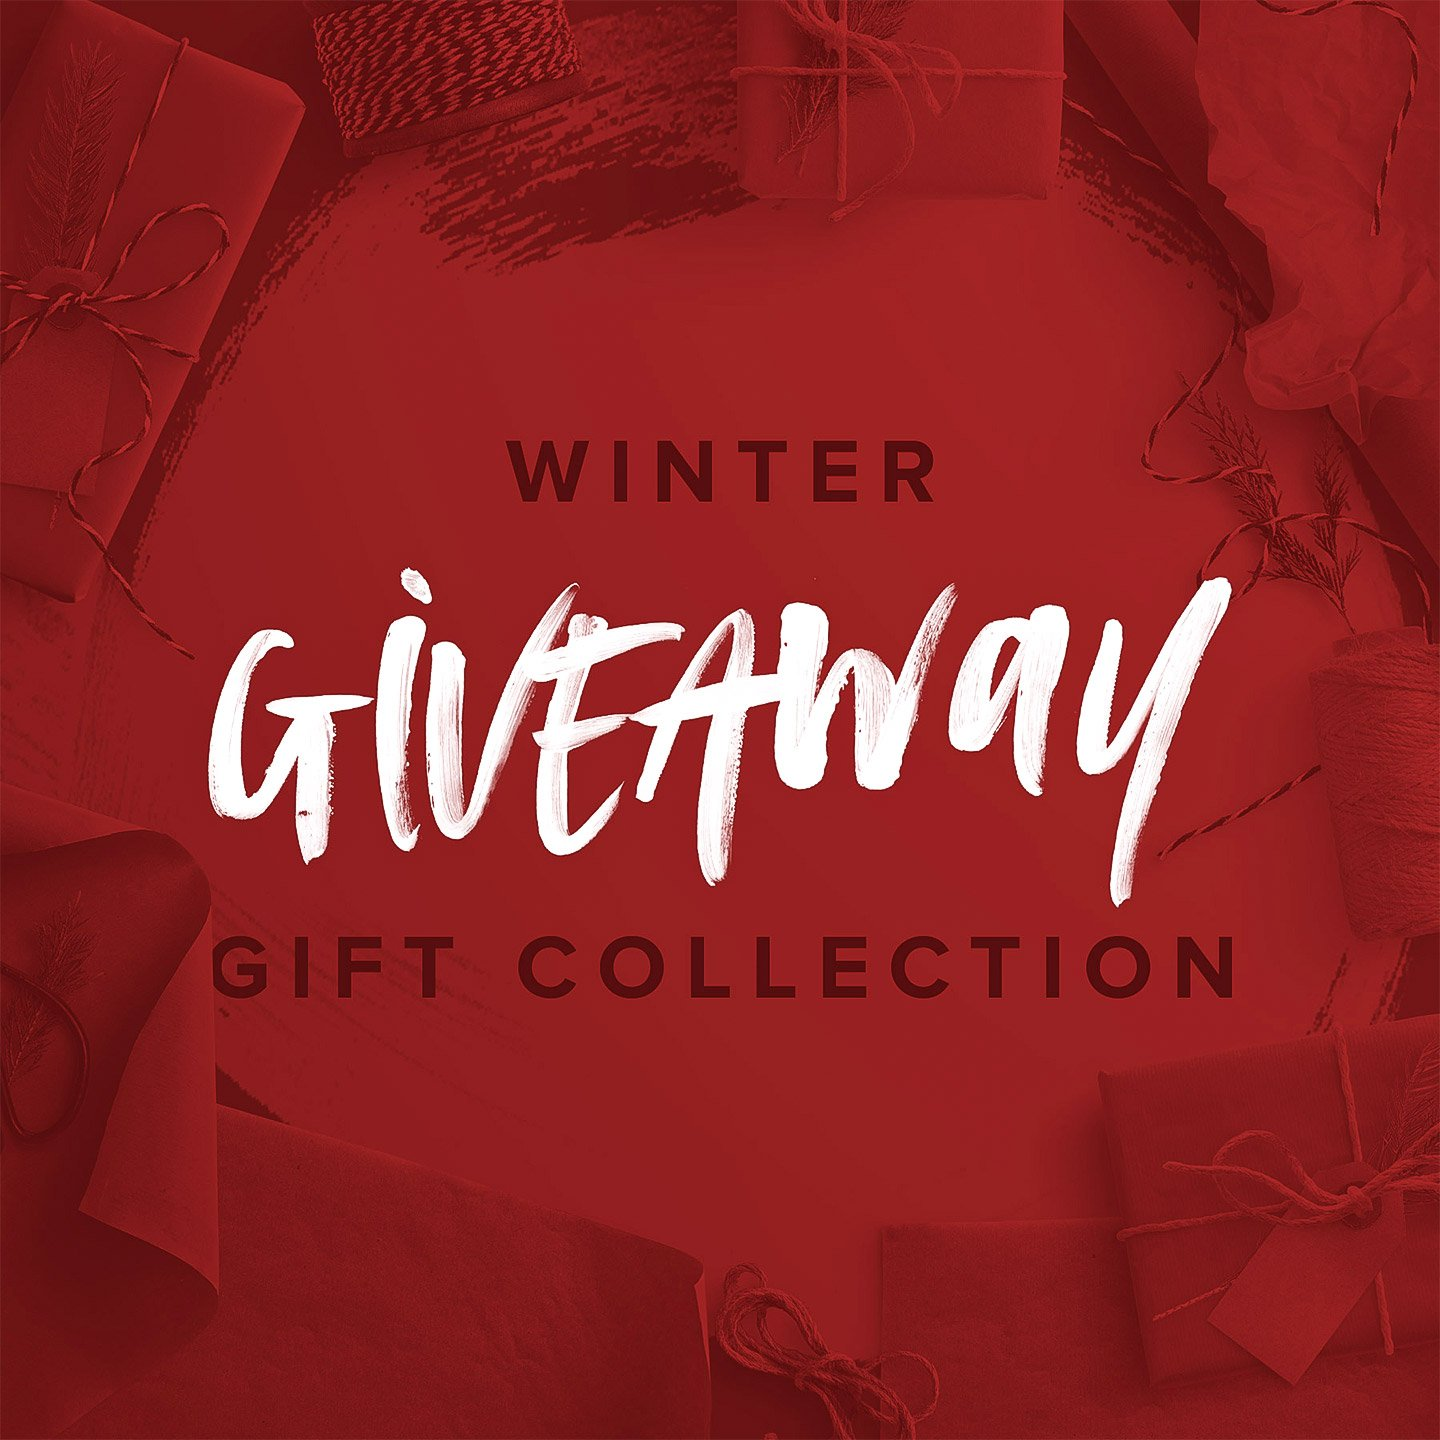 giveaway winter gift collection